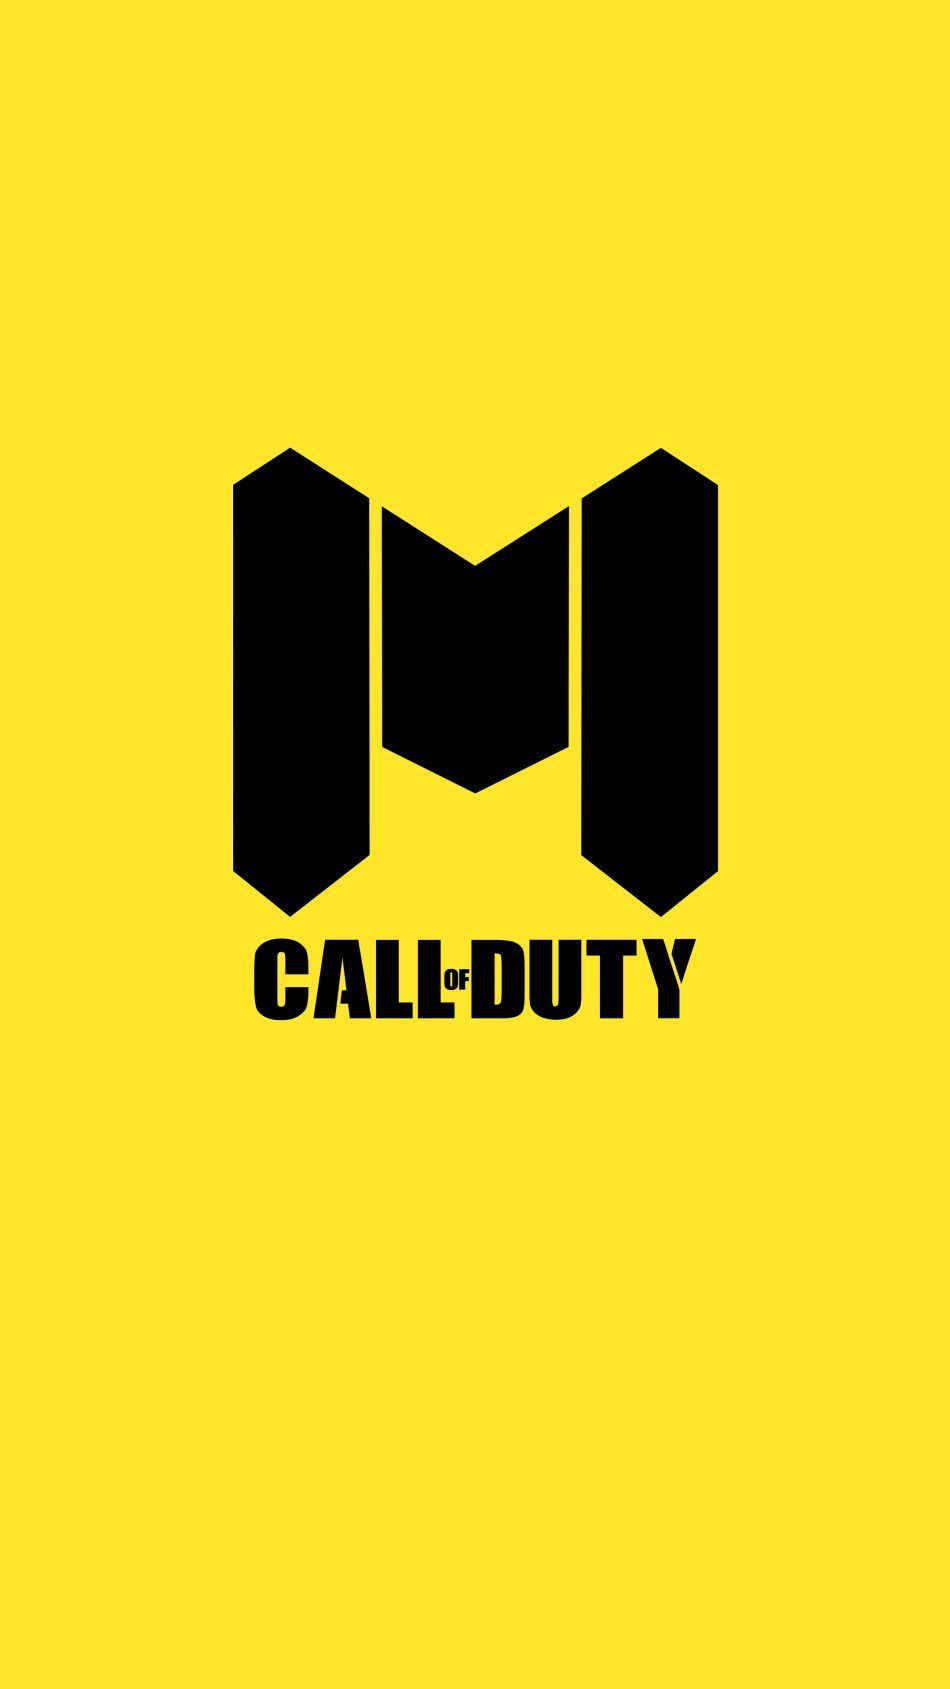 call of duty mobile wallpaper 4k download